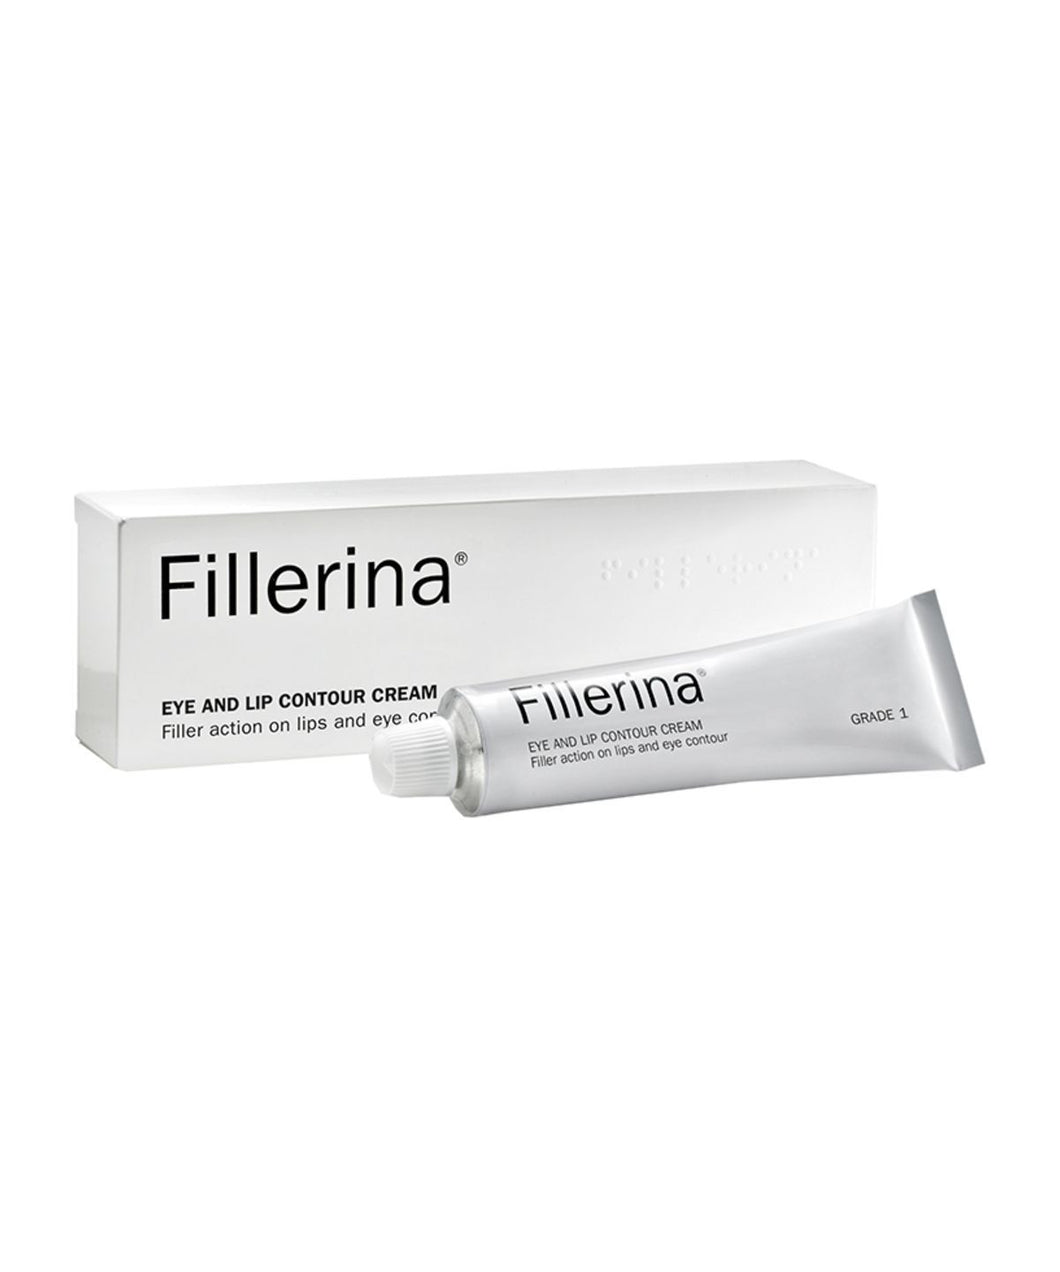 Fillerina Eye and Lip Contour Cream